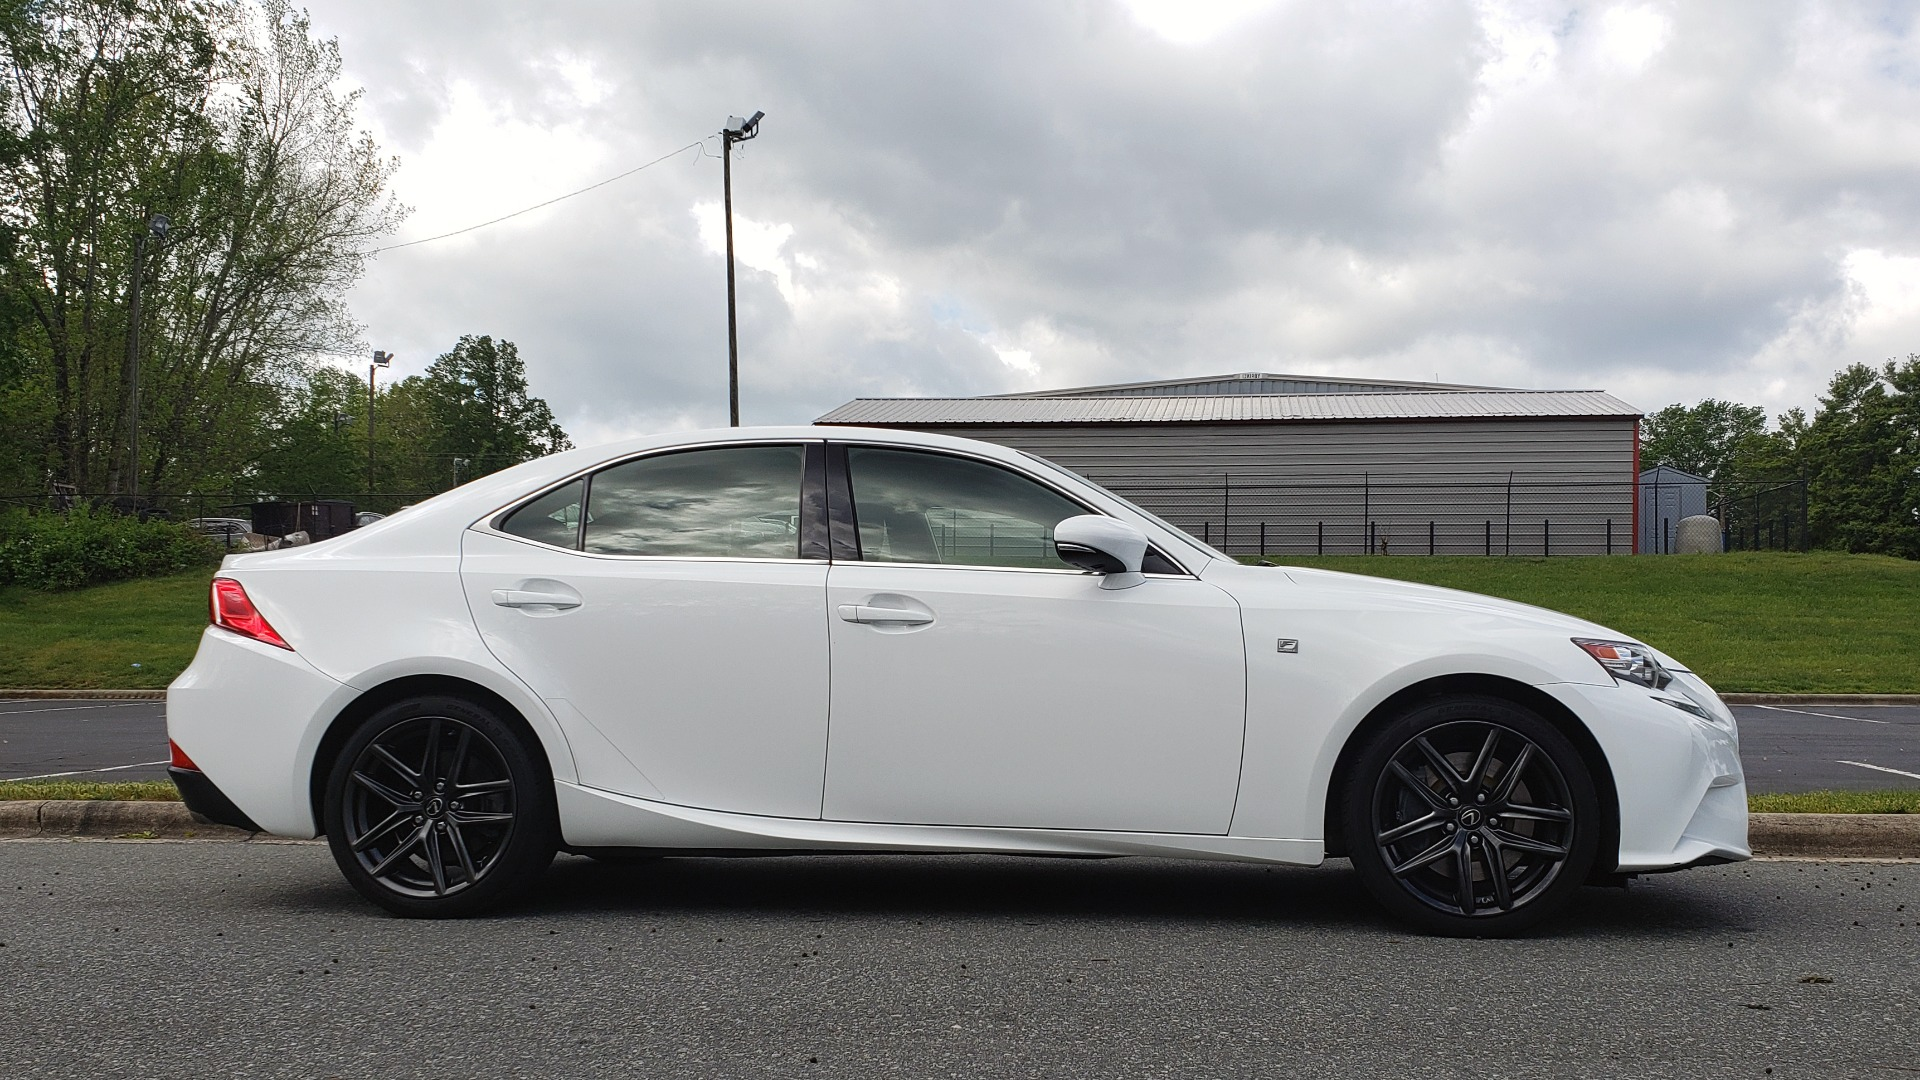 Used 2016 Lexus IS 350 F-SPORT / NAV / BSM / SUNROOF / REARVIEW / VENT SEATS for sale Sold at Formula Imports in Charlotte NC 28227 5